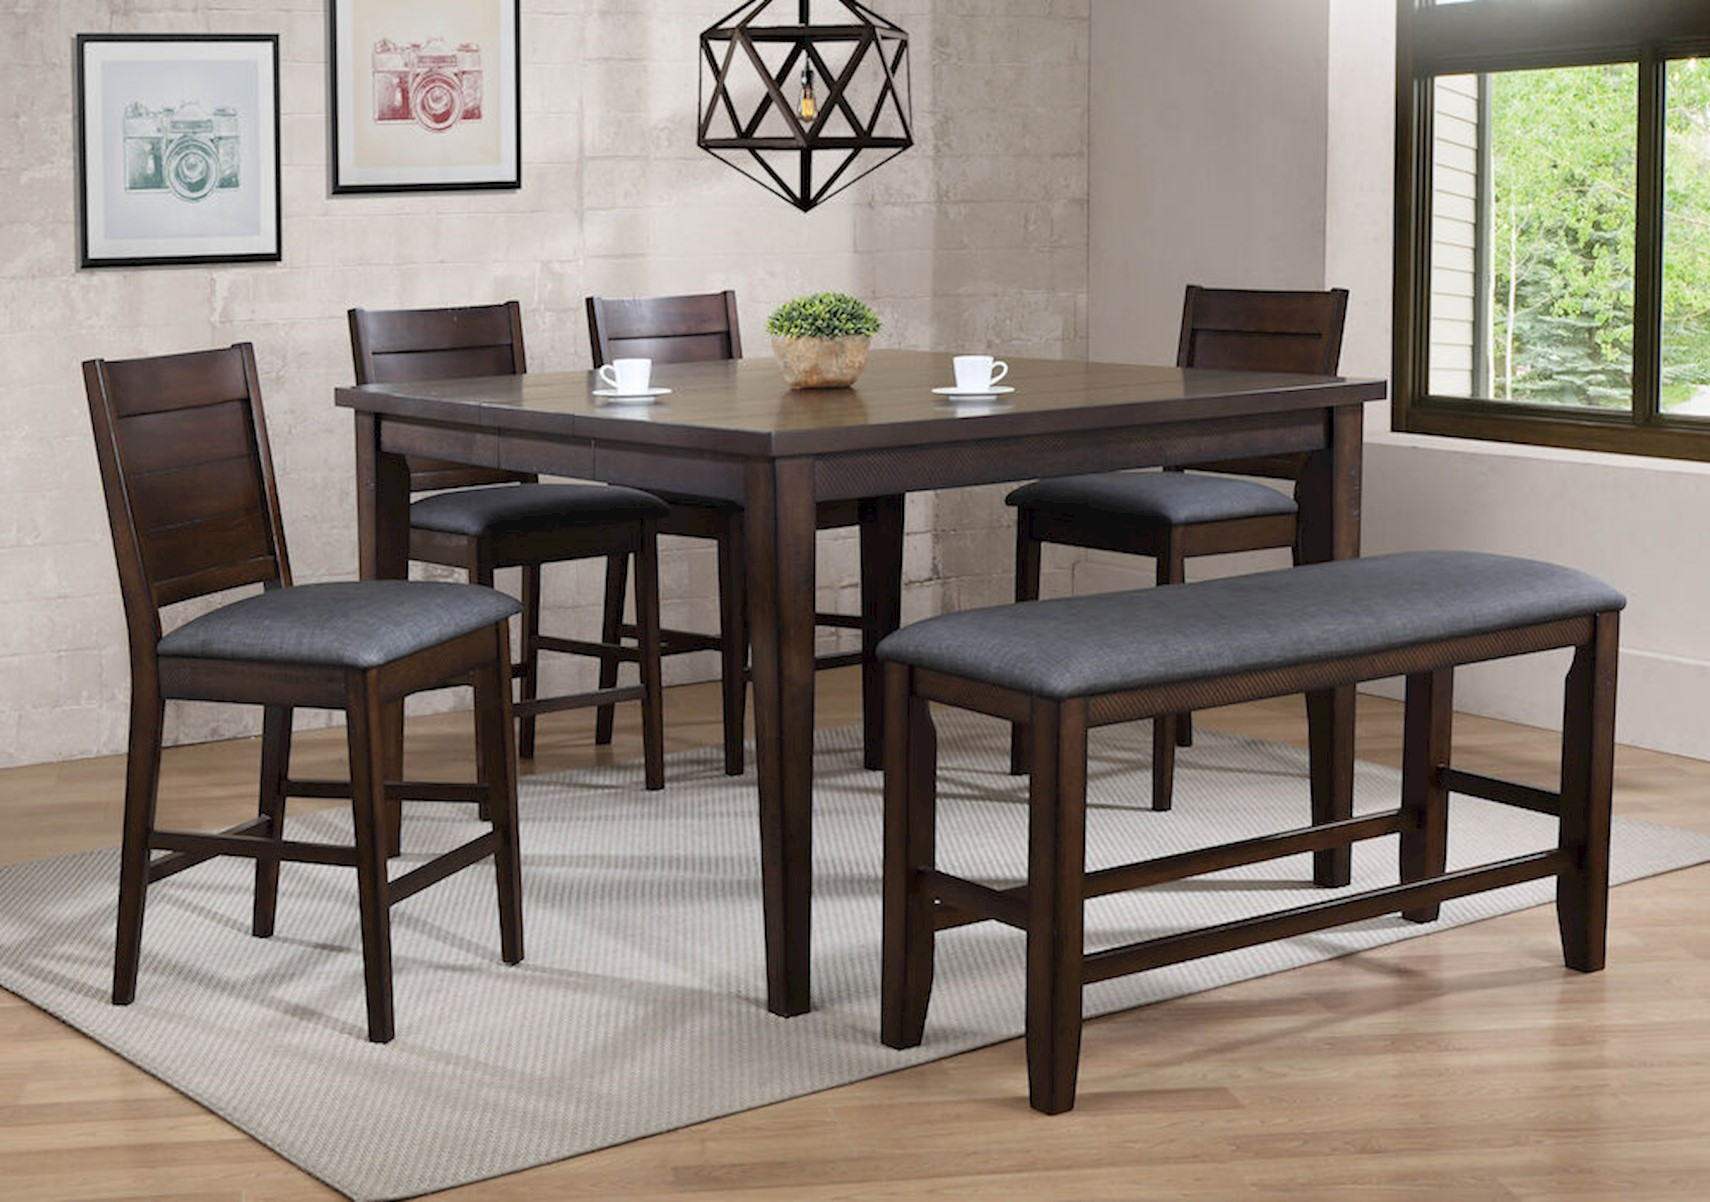 Broadway 6 Pc Counter Height Dining Set